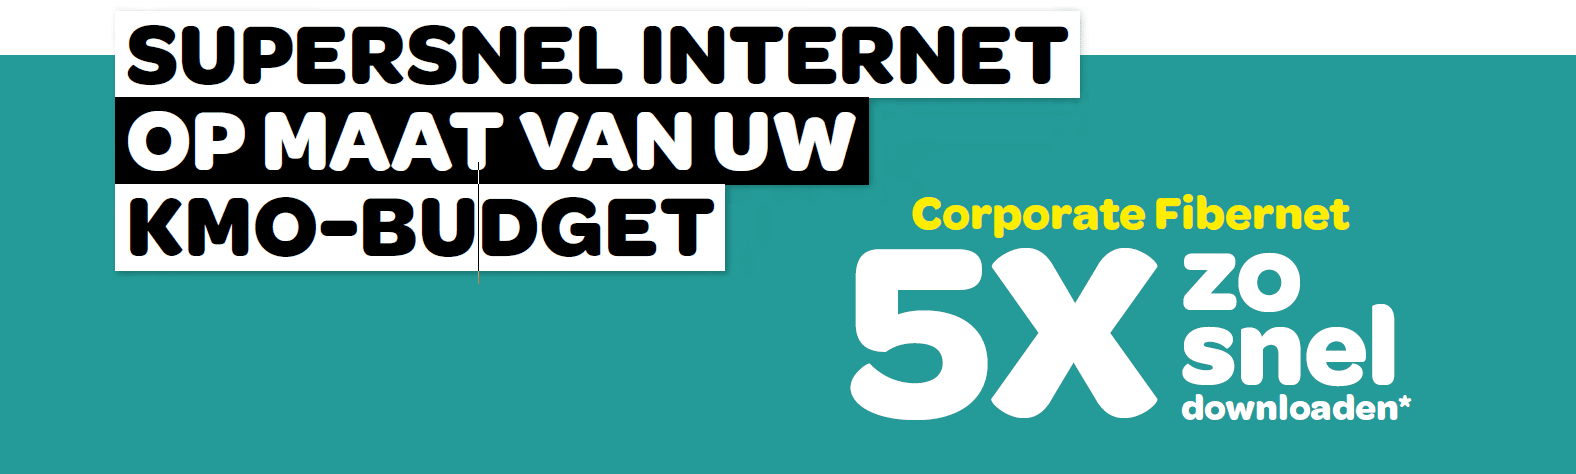 Supersnel internet